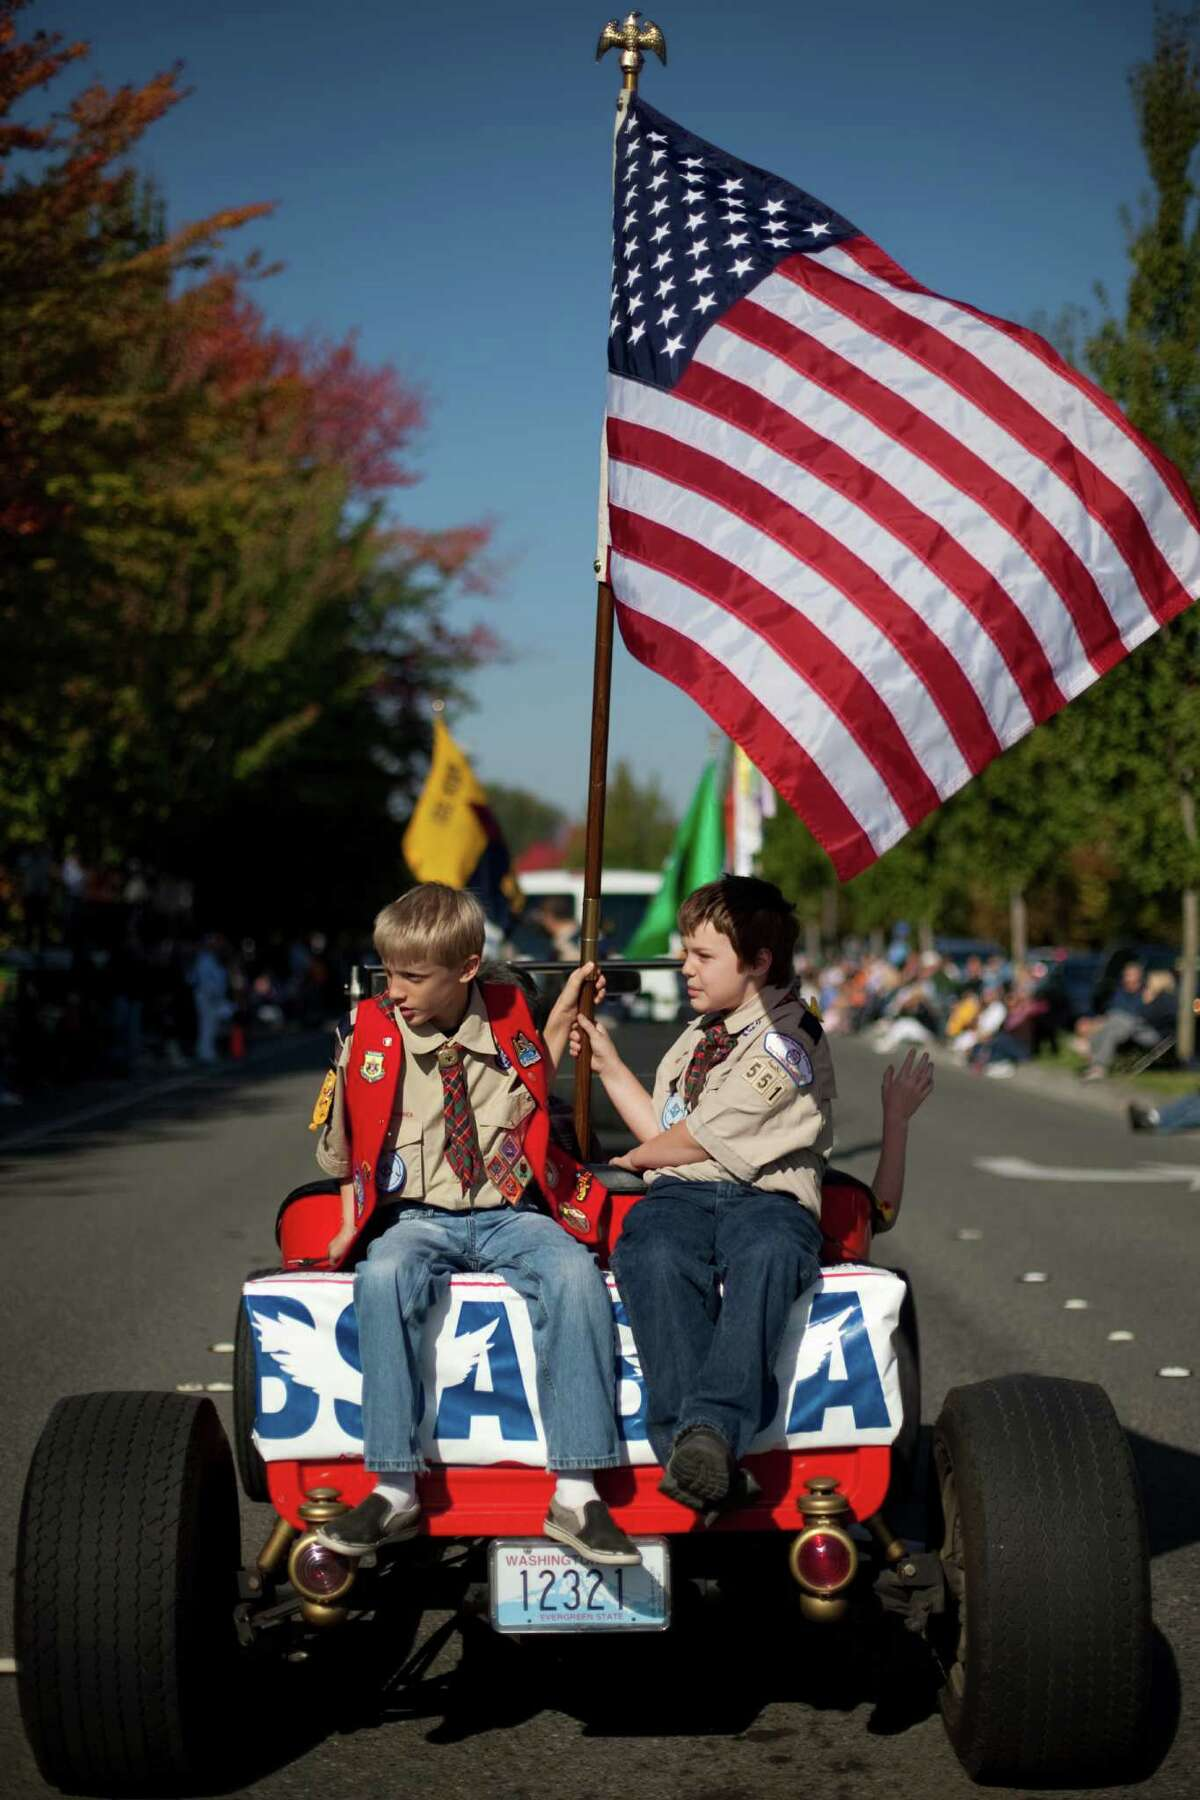 Boy Scouts Jacob Monaghan, 11, left, and Max Eberhardt, 10, ride on the back of a modified 1922 Model T during the Issaquah Salmon Days Parade on Saturday, October 6, 2012. The annual festival kicks off with a parade and celebrates the return of the salmon to Issaquah Creek.